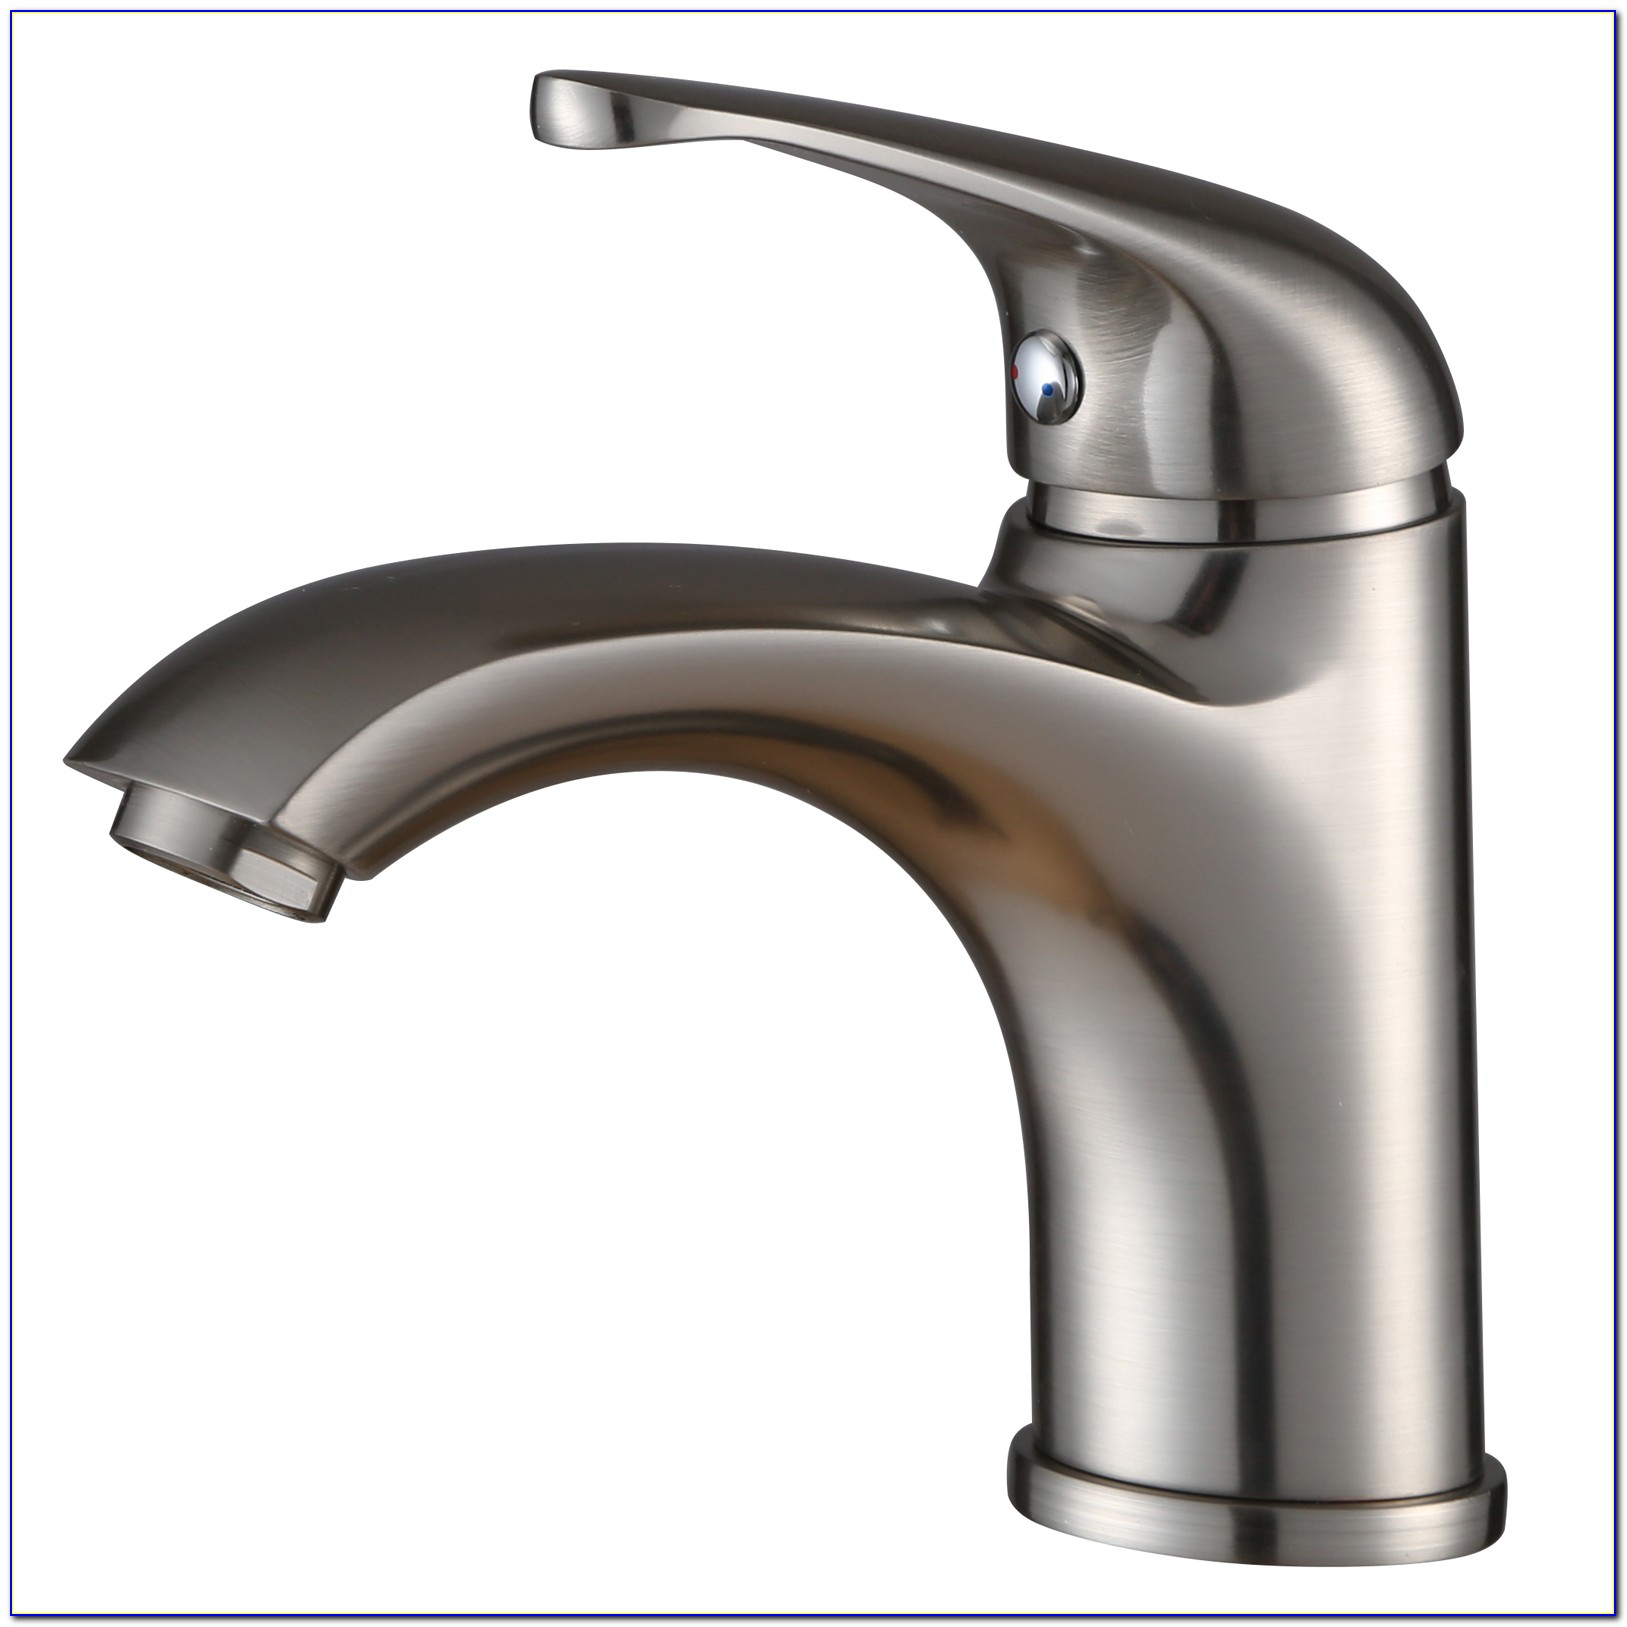 Brushed Nickel Single Hole Bath Faucet